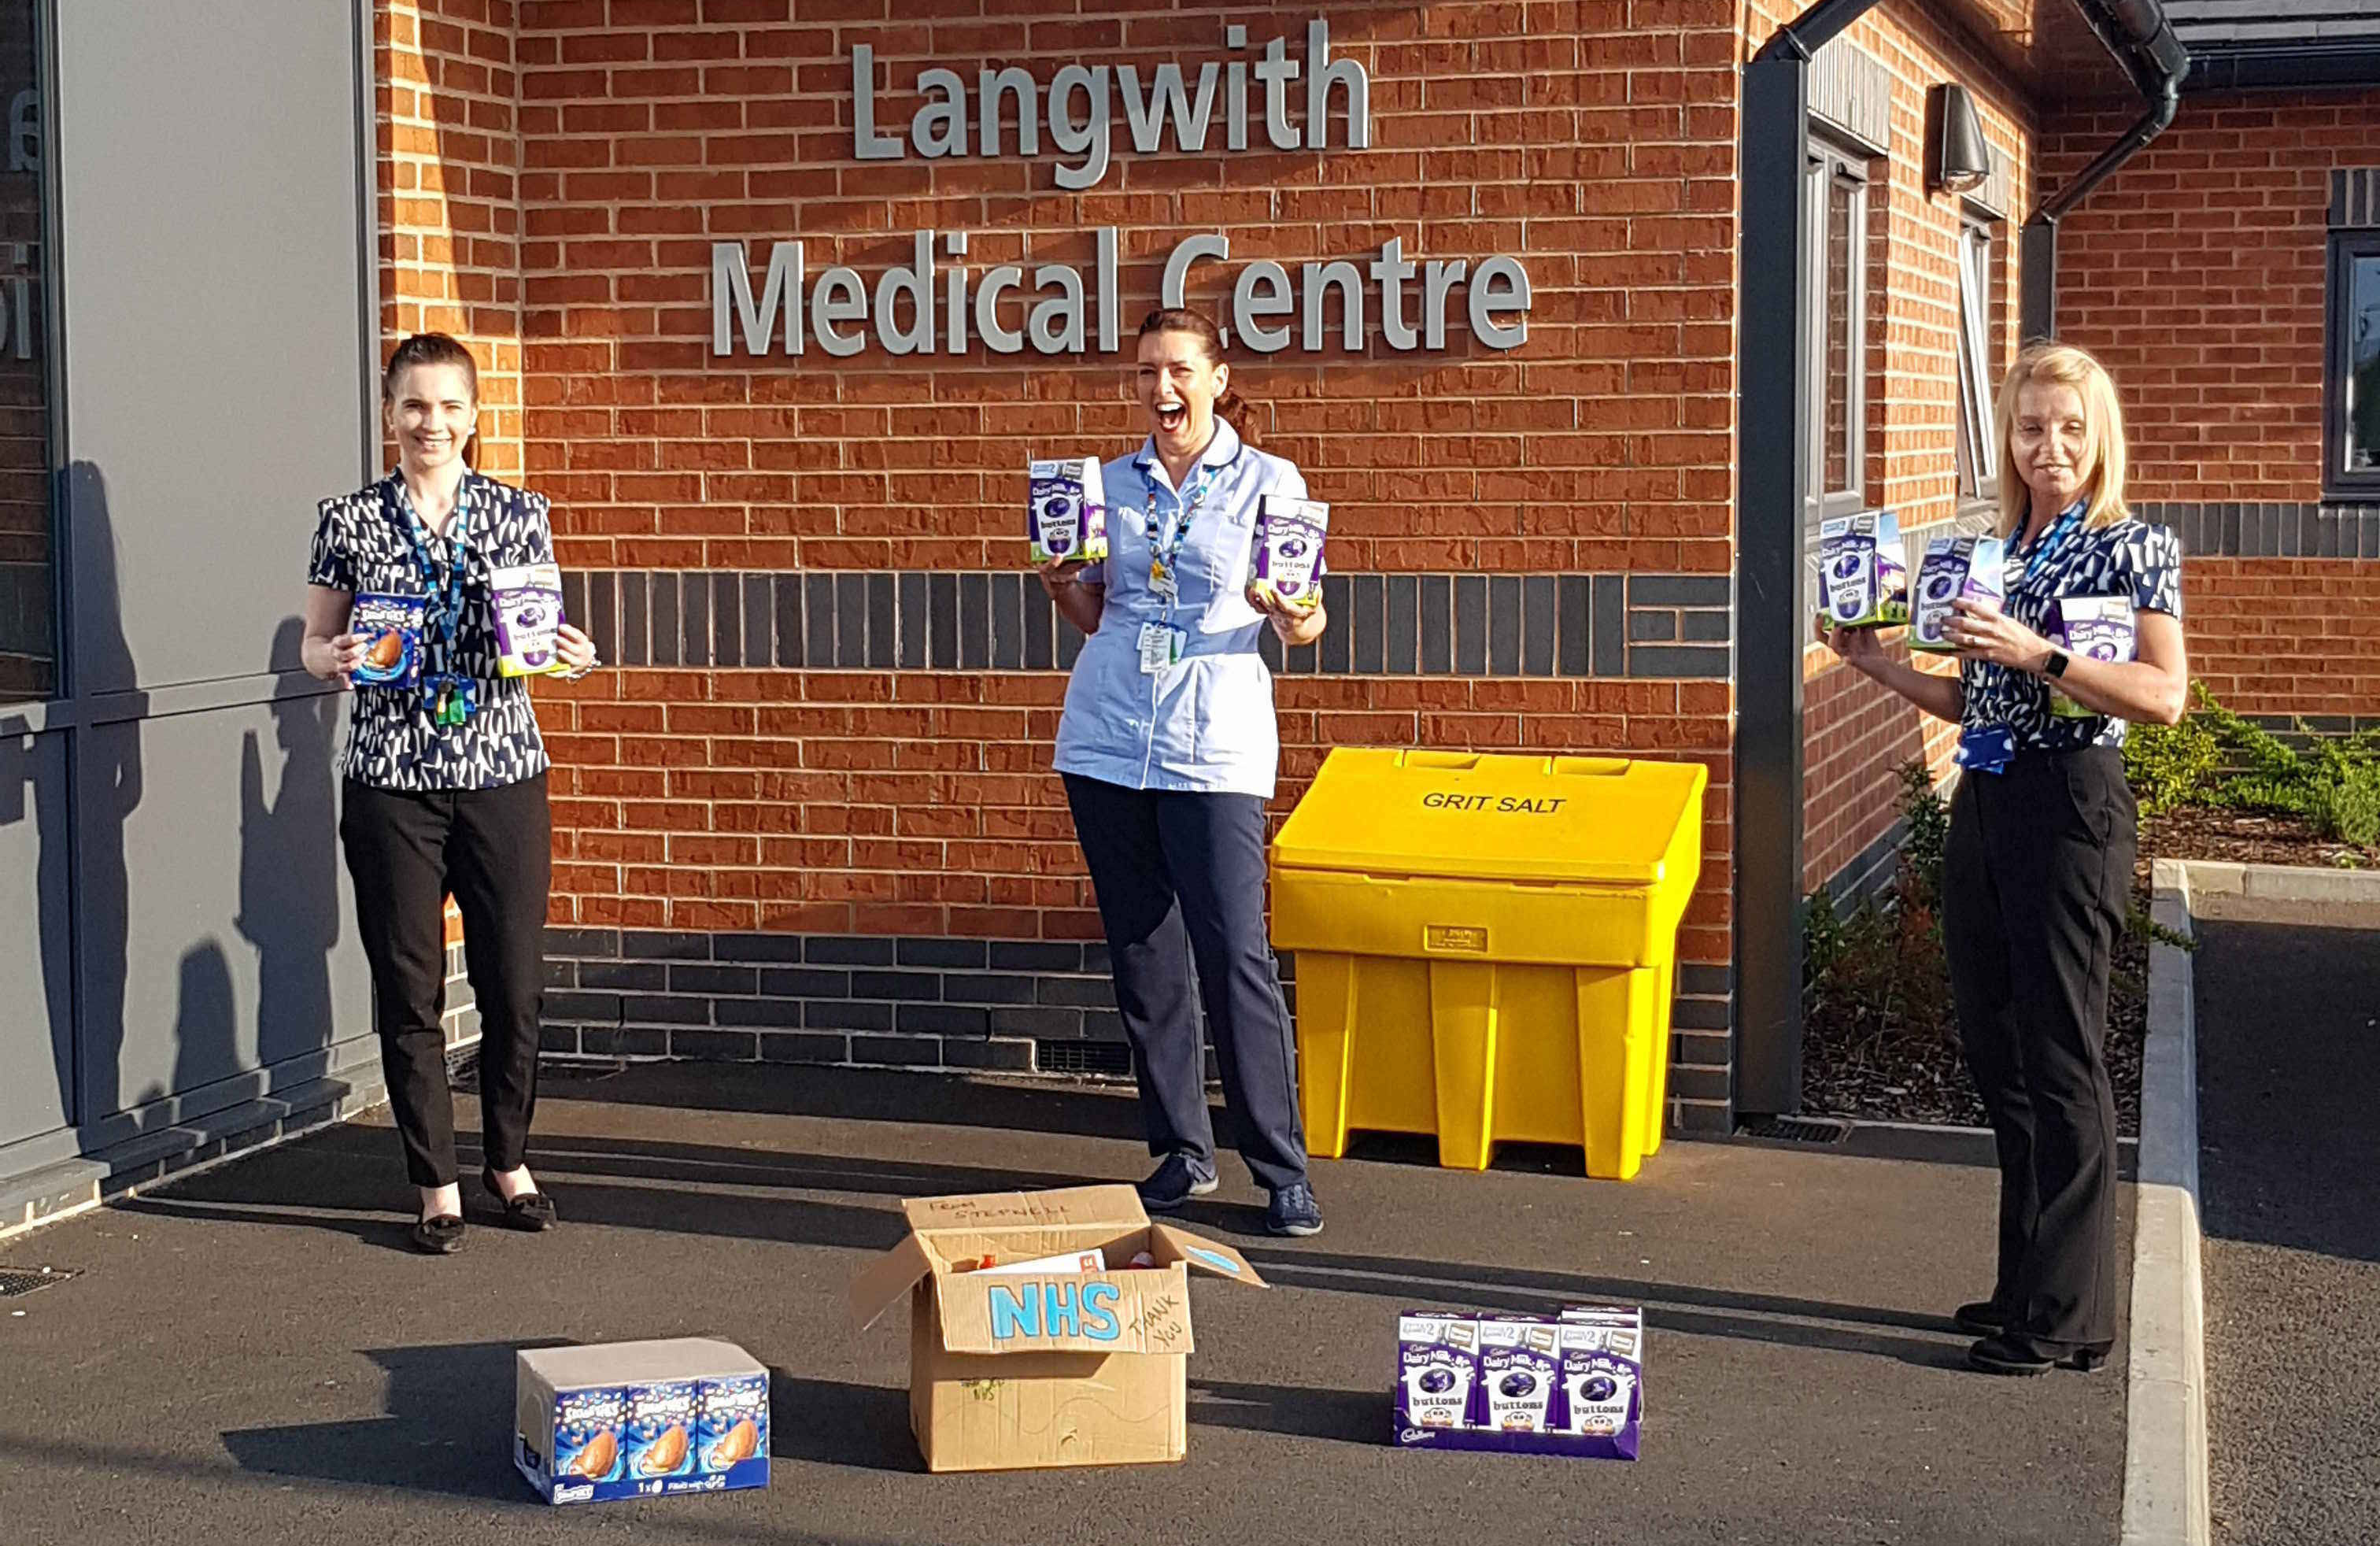 Stepnell Supports Local Medical Centre With Much Needed Supplies